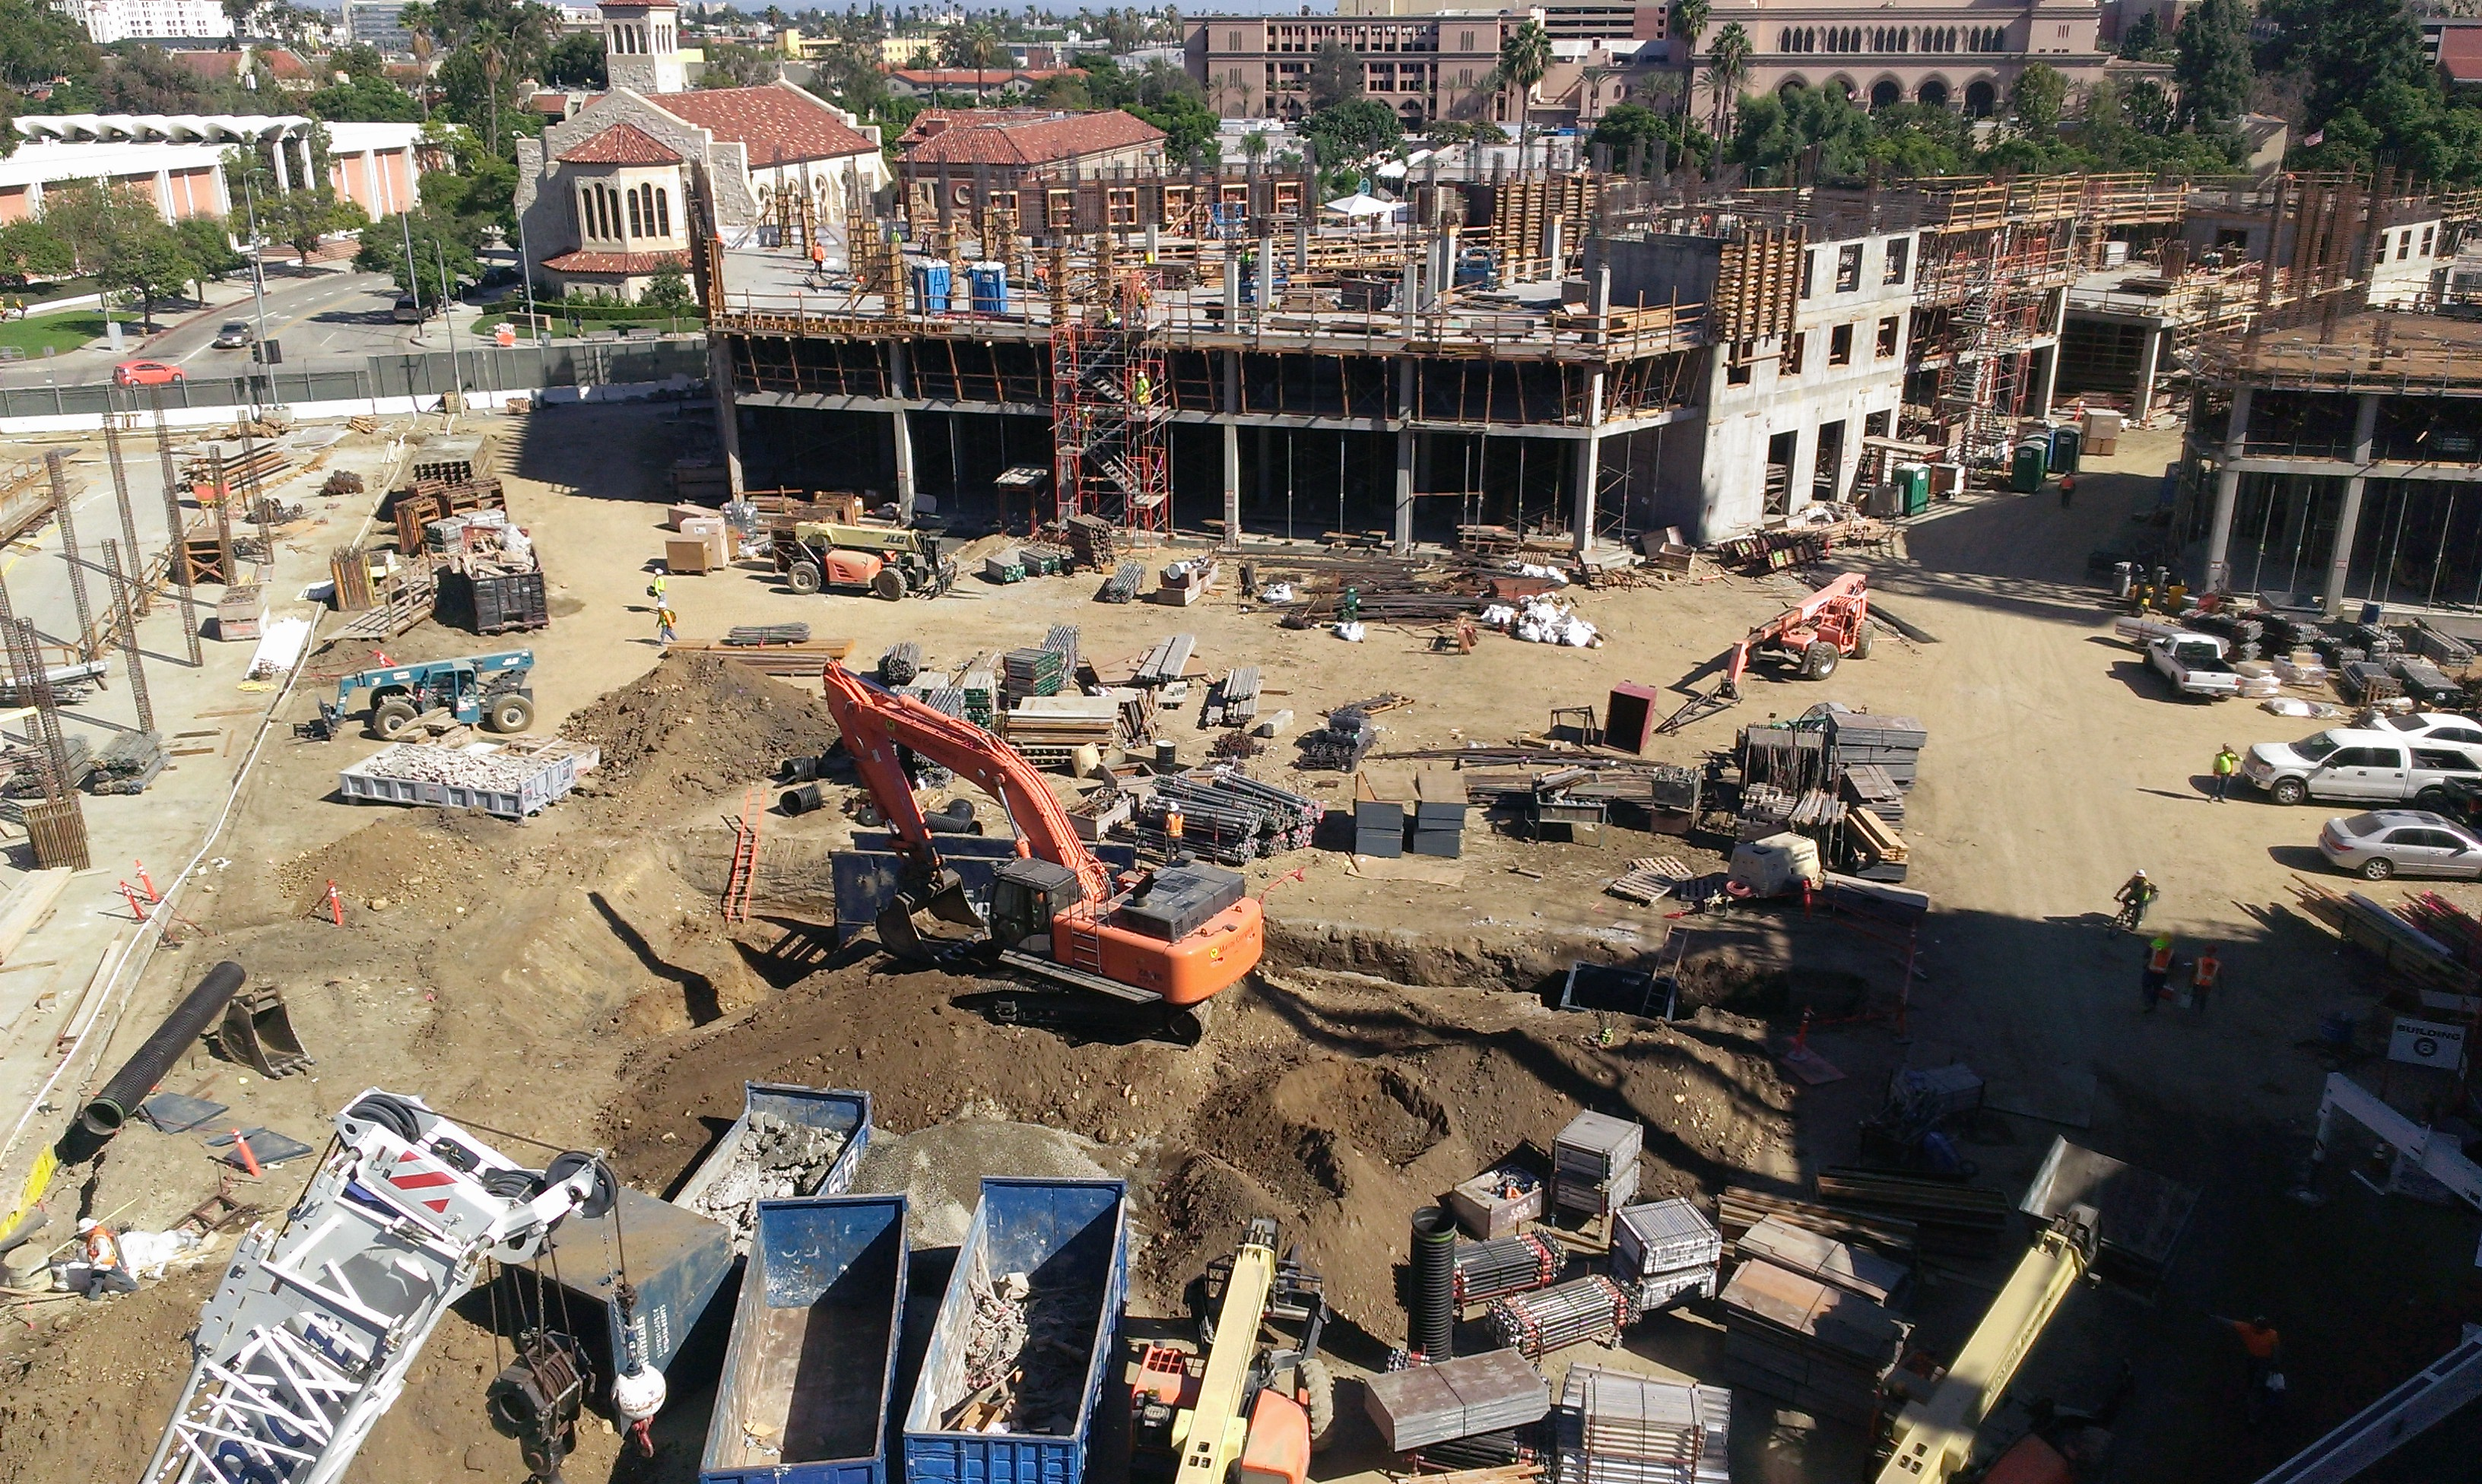 Utility work continues in the central plaza.